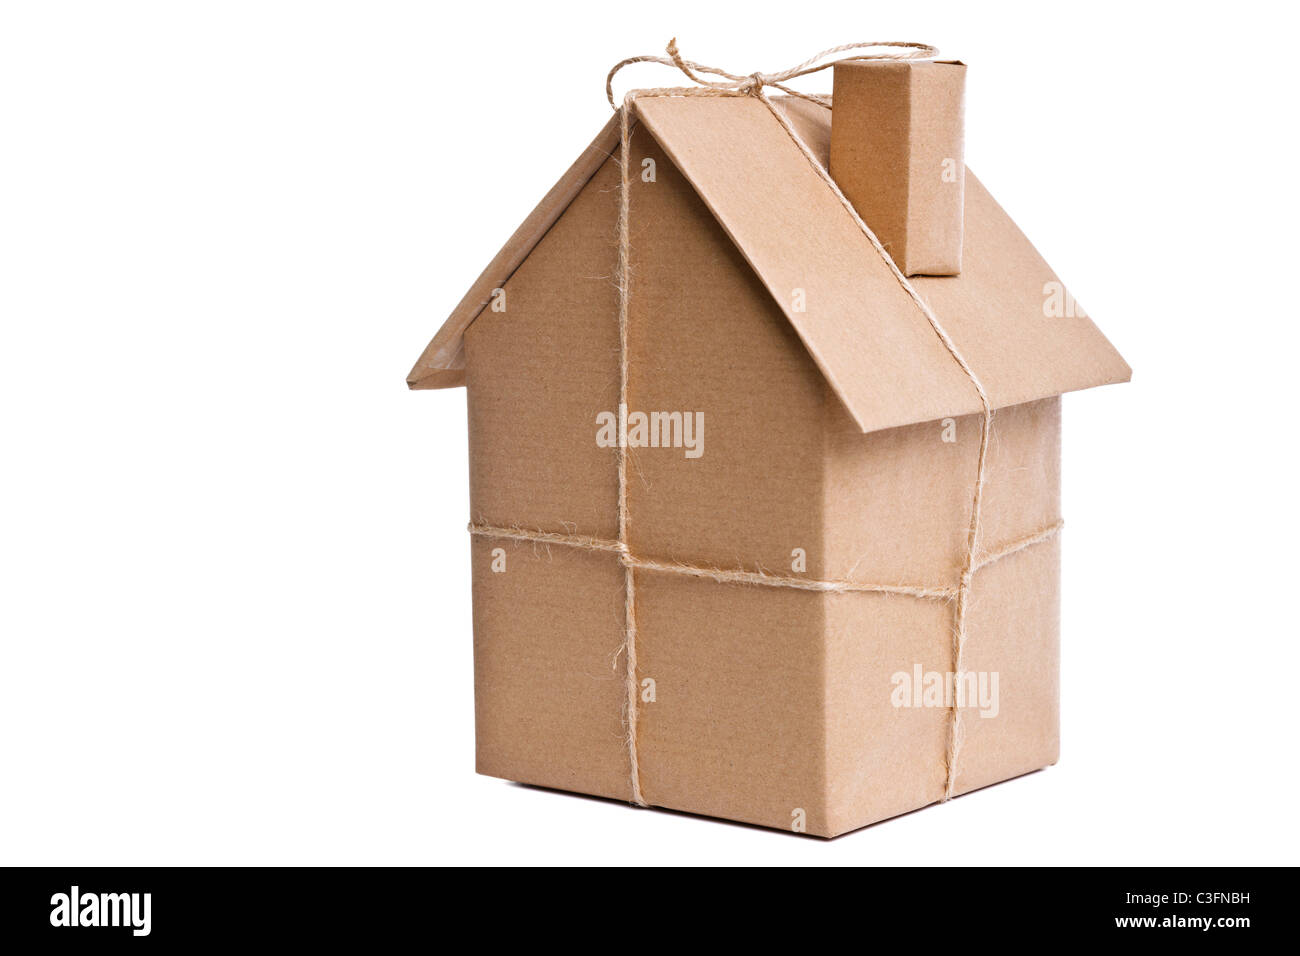 Photo of a wrapped house in brown recycled paper, cut out on a white background. - Stock Image